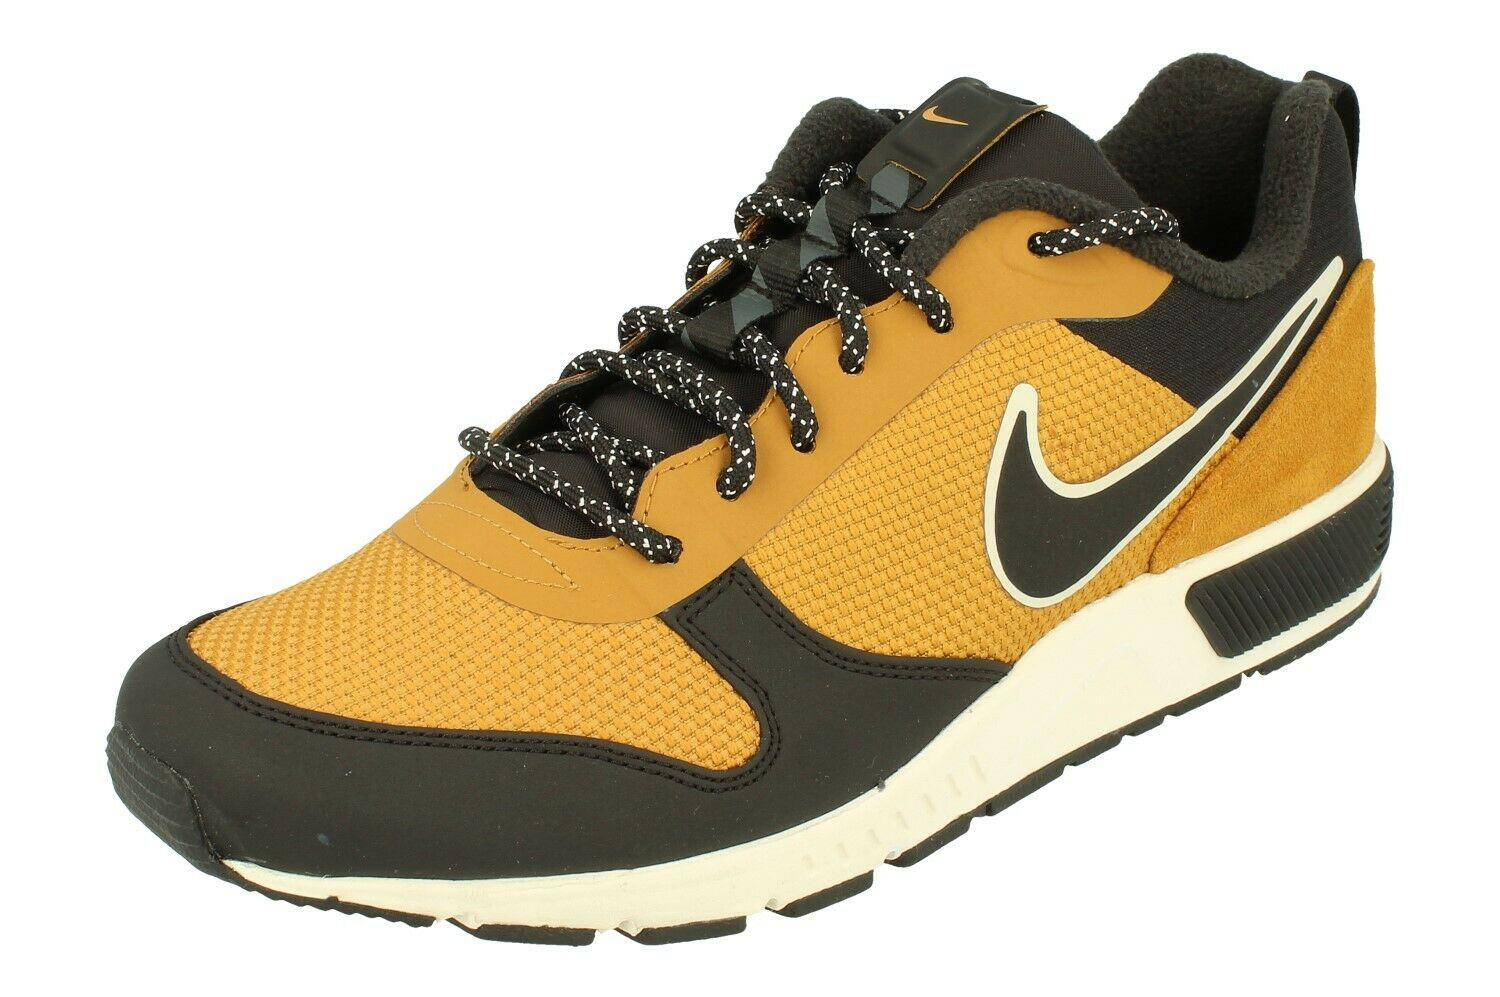 f972fd91b1 Nike Trail Mens Running Trainers 916775 shoes 700 Nightgazer Sneakers  nqdoic1747-Athletic Shoes